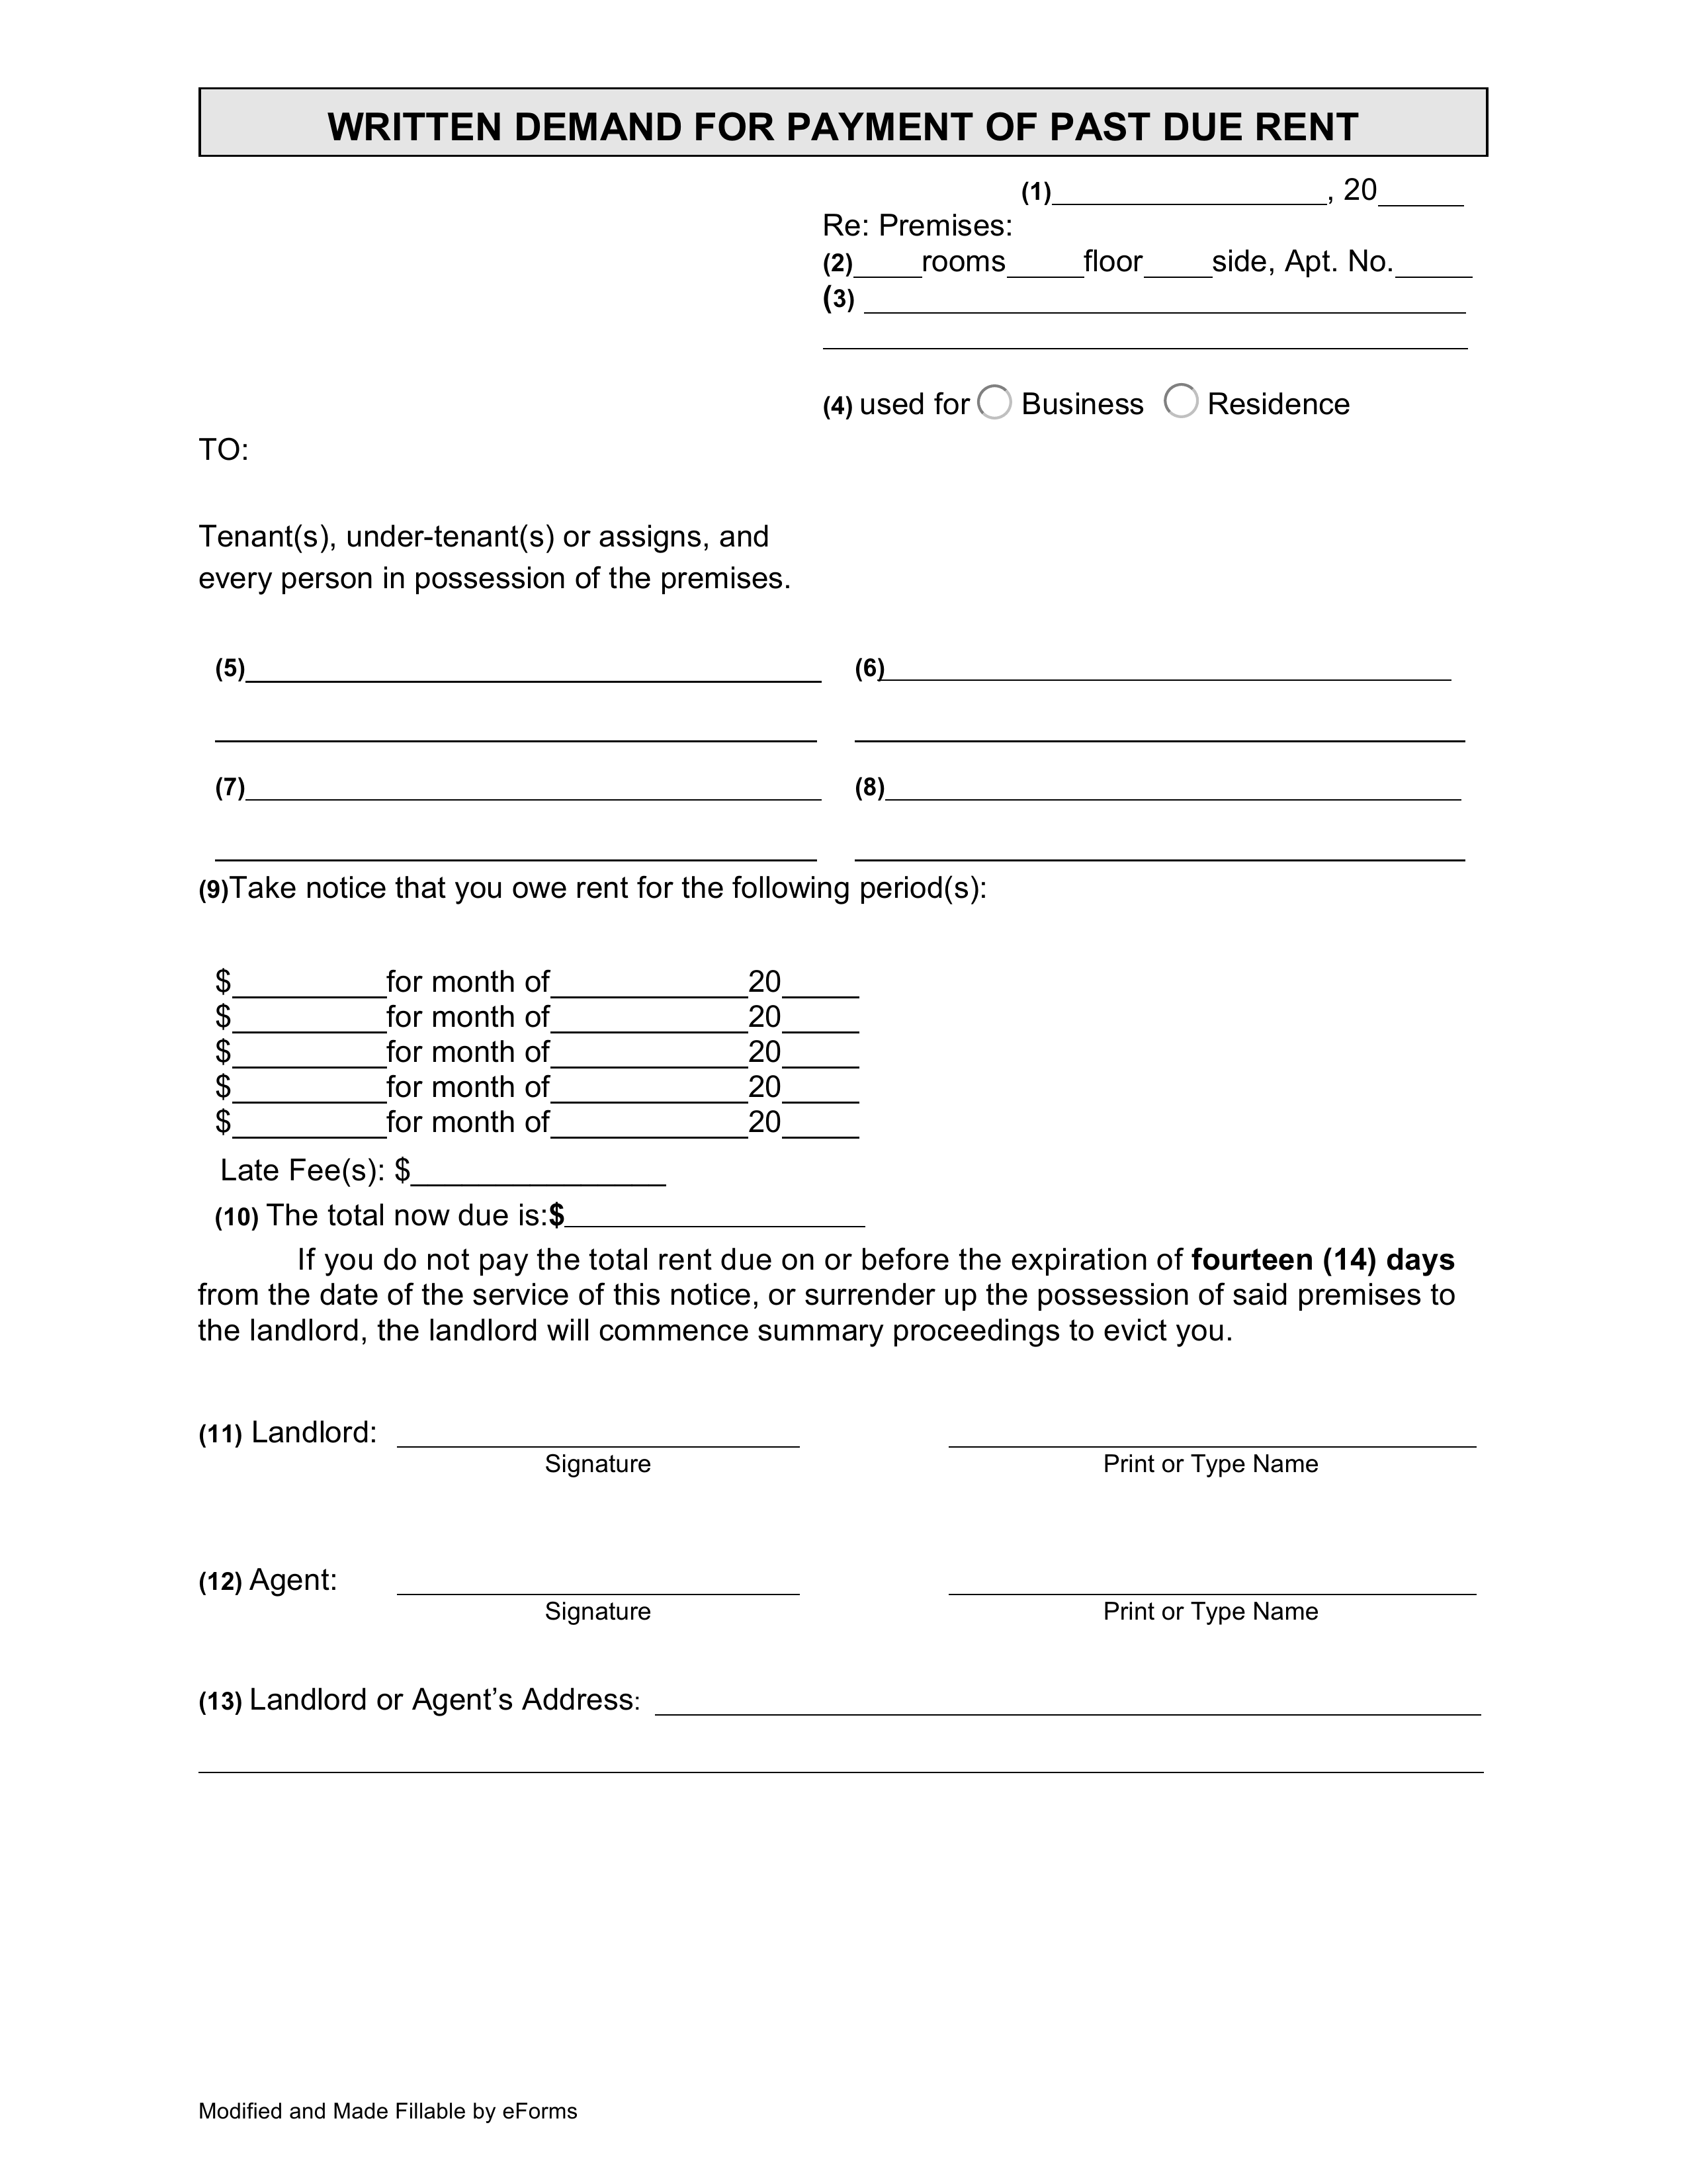 Sample Letter For Nonpayment Of Rent from eforms.com